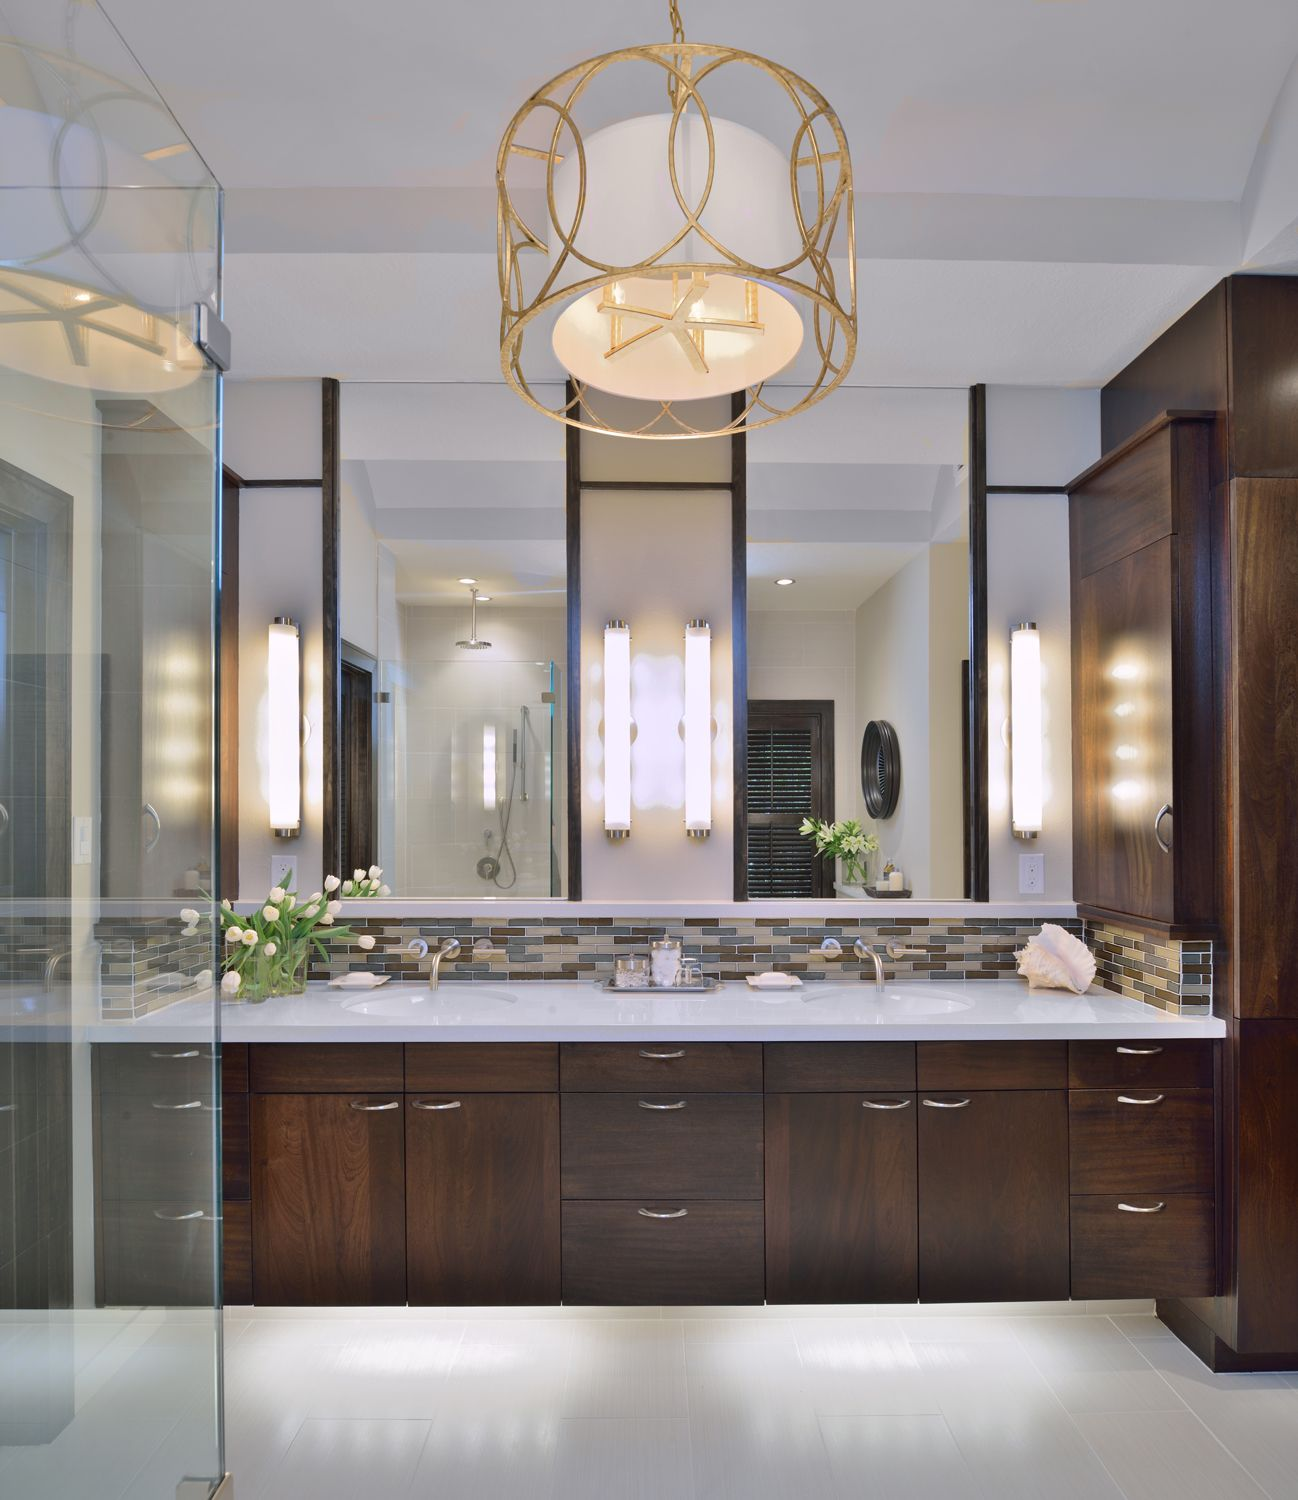 Picture Gallery Website Classy Master Bathroom Remodel Before And After With Modern Brown Cabinet Vanity On Flexible White Ceramic